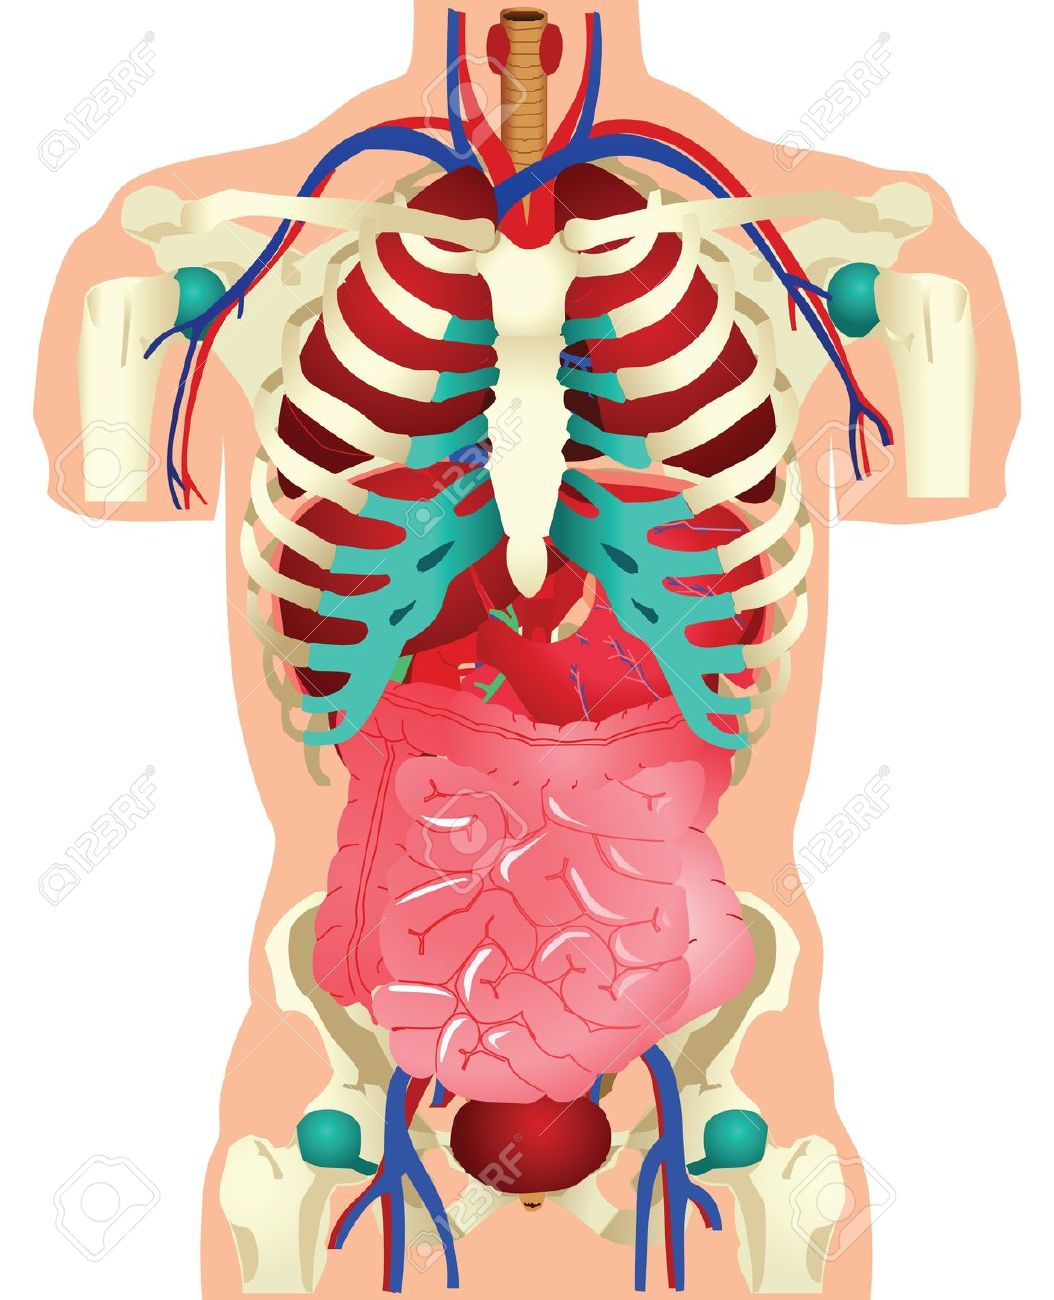 Free anatomy pictures